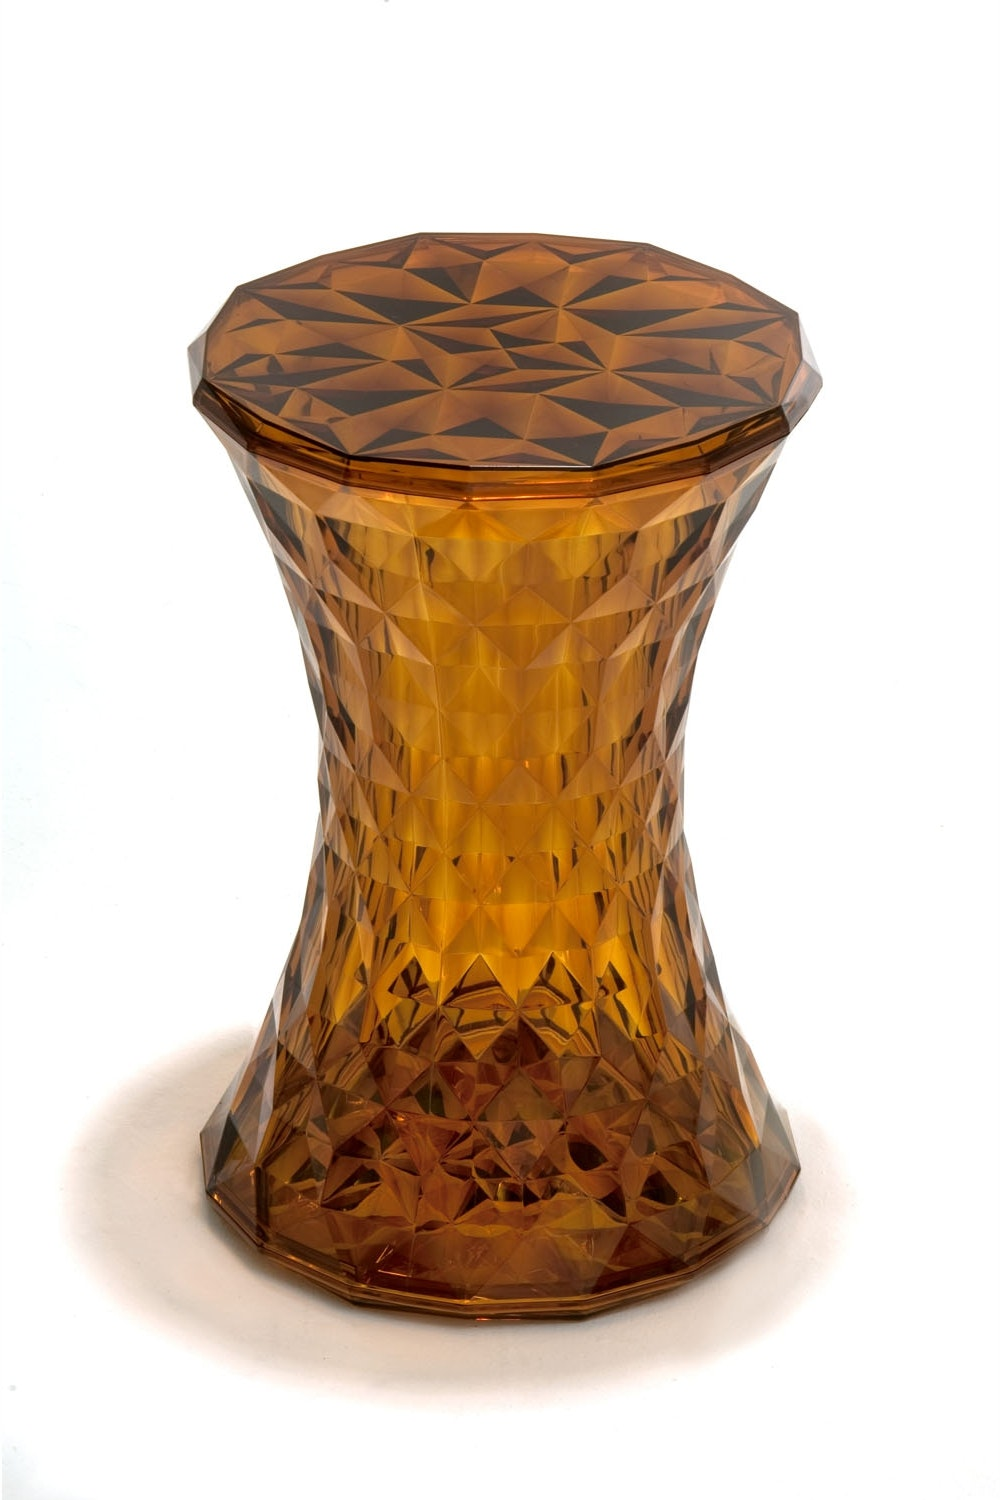 Stone Stool in Transparent Amber